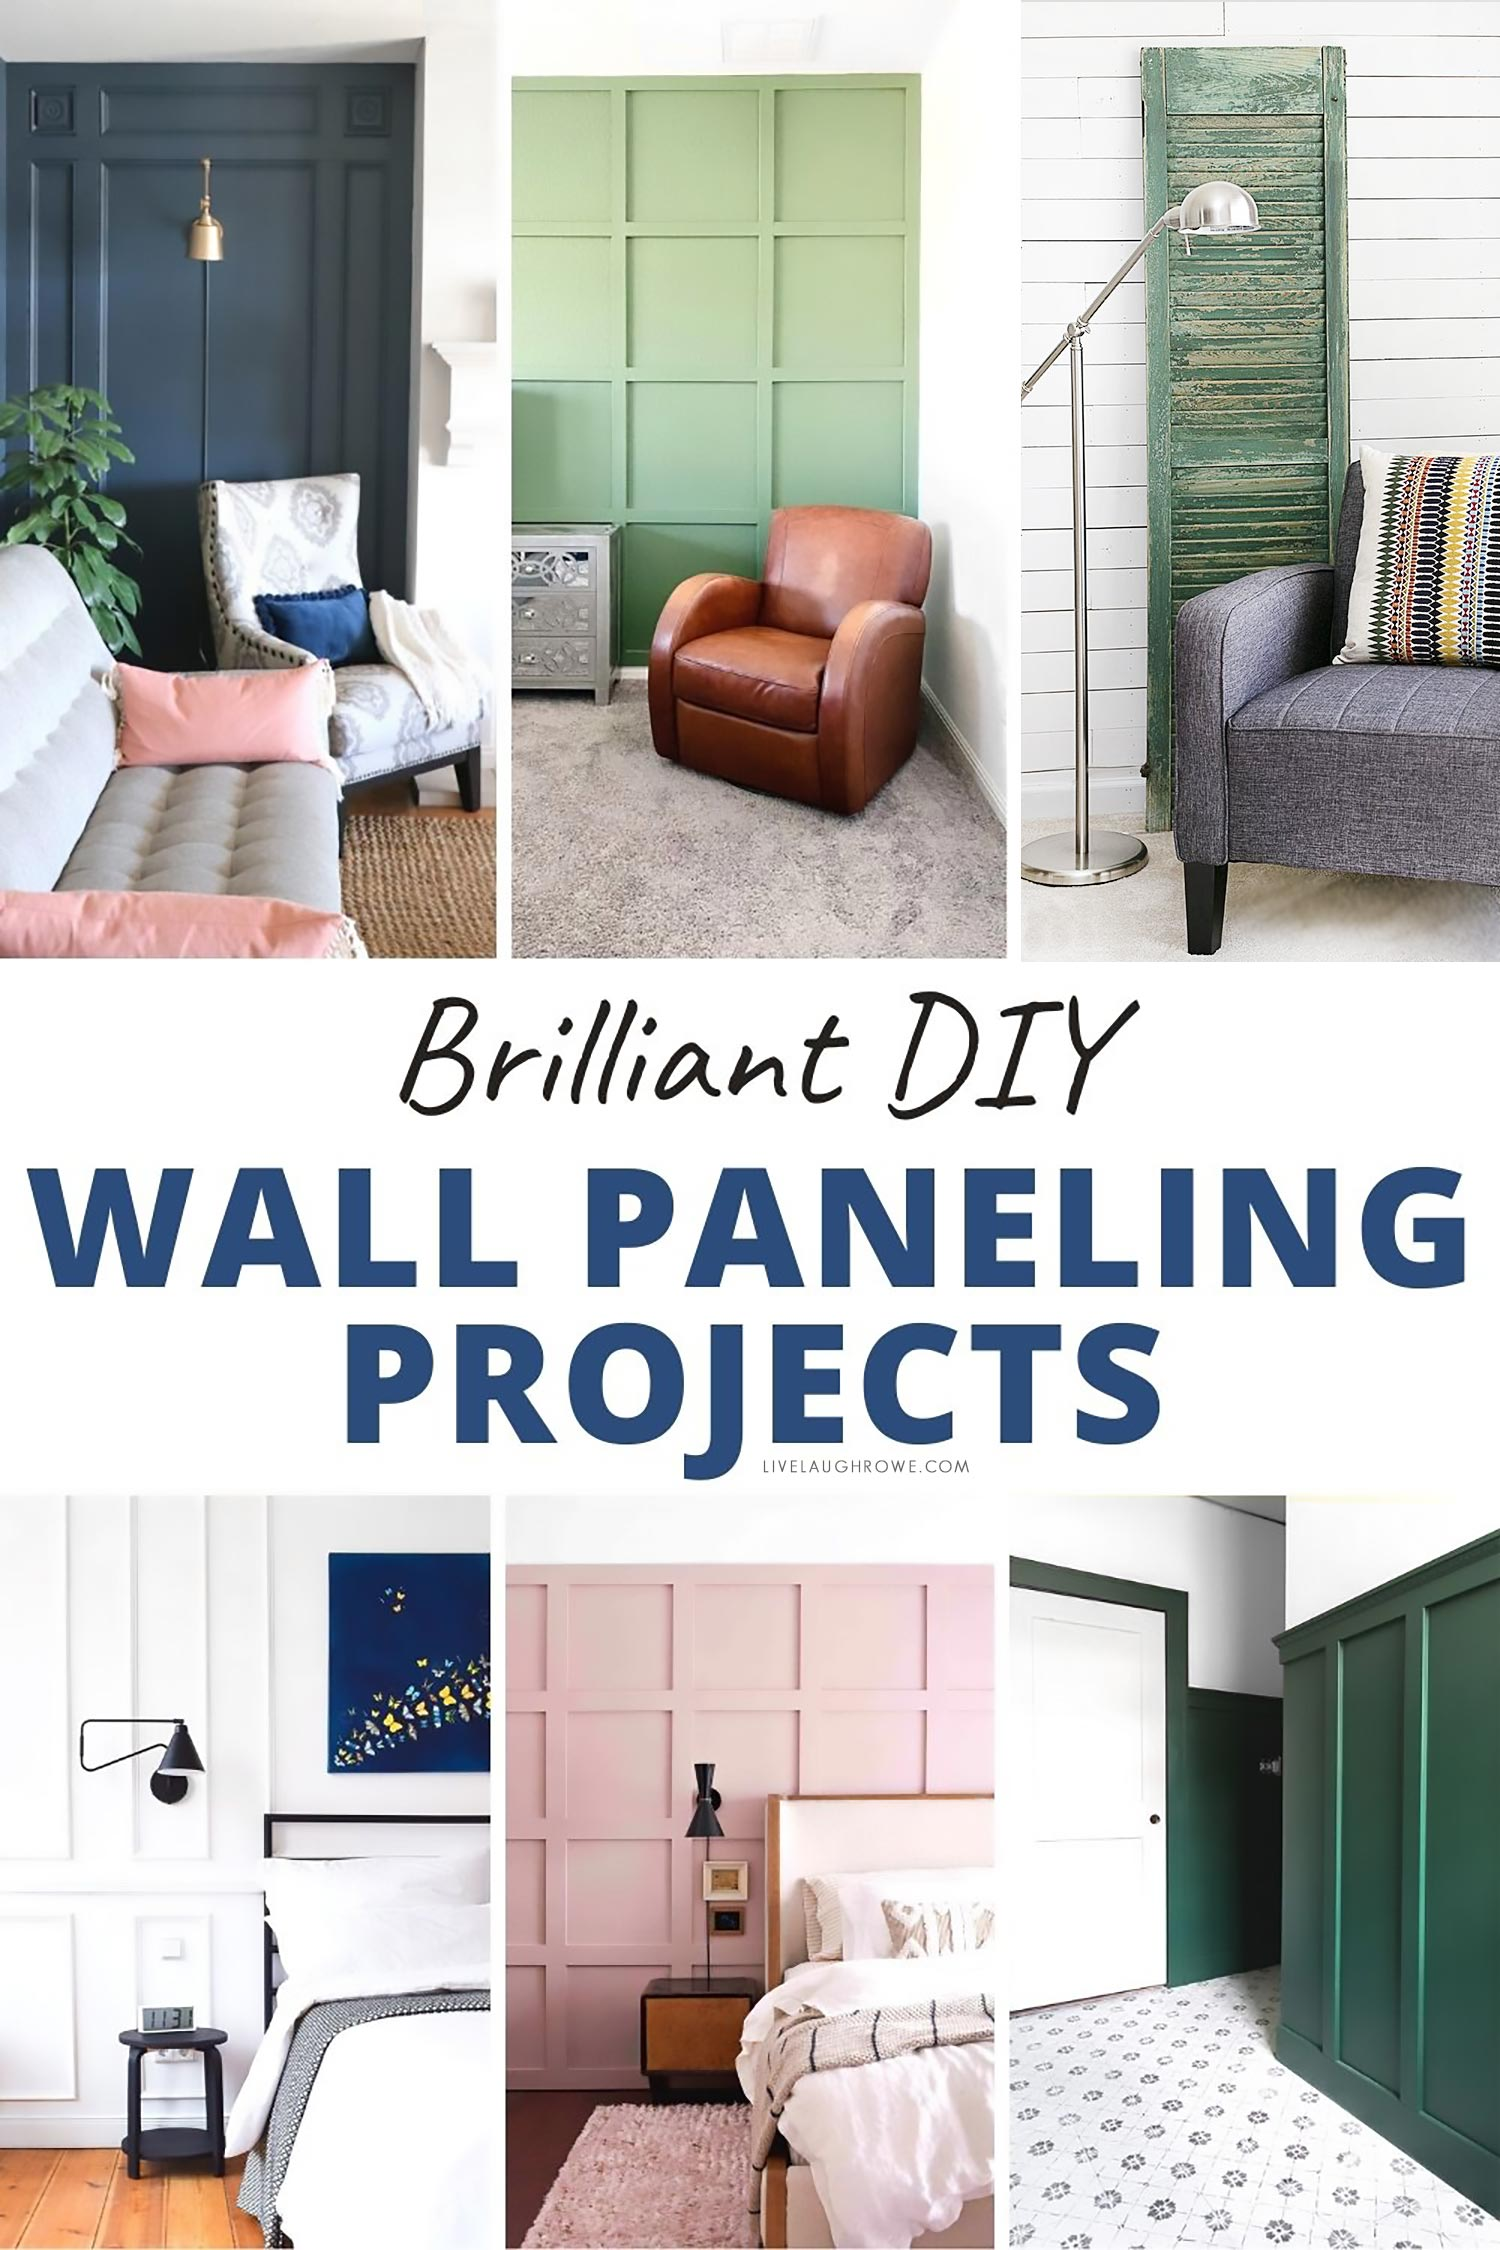 DIY Wall Paneling Ideas in a Collage